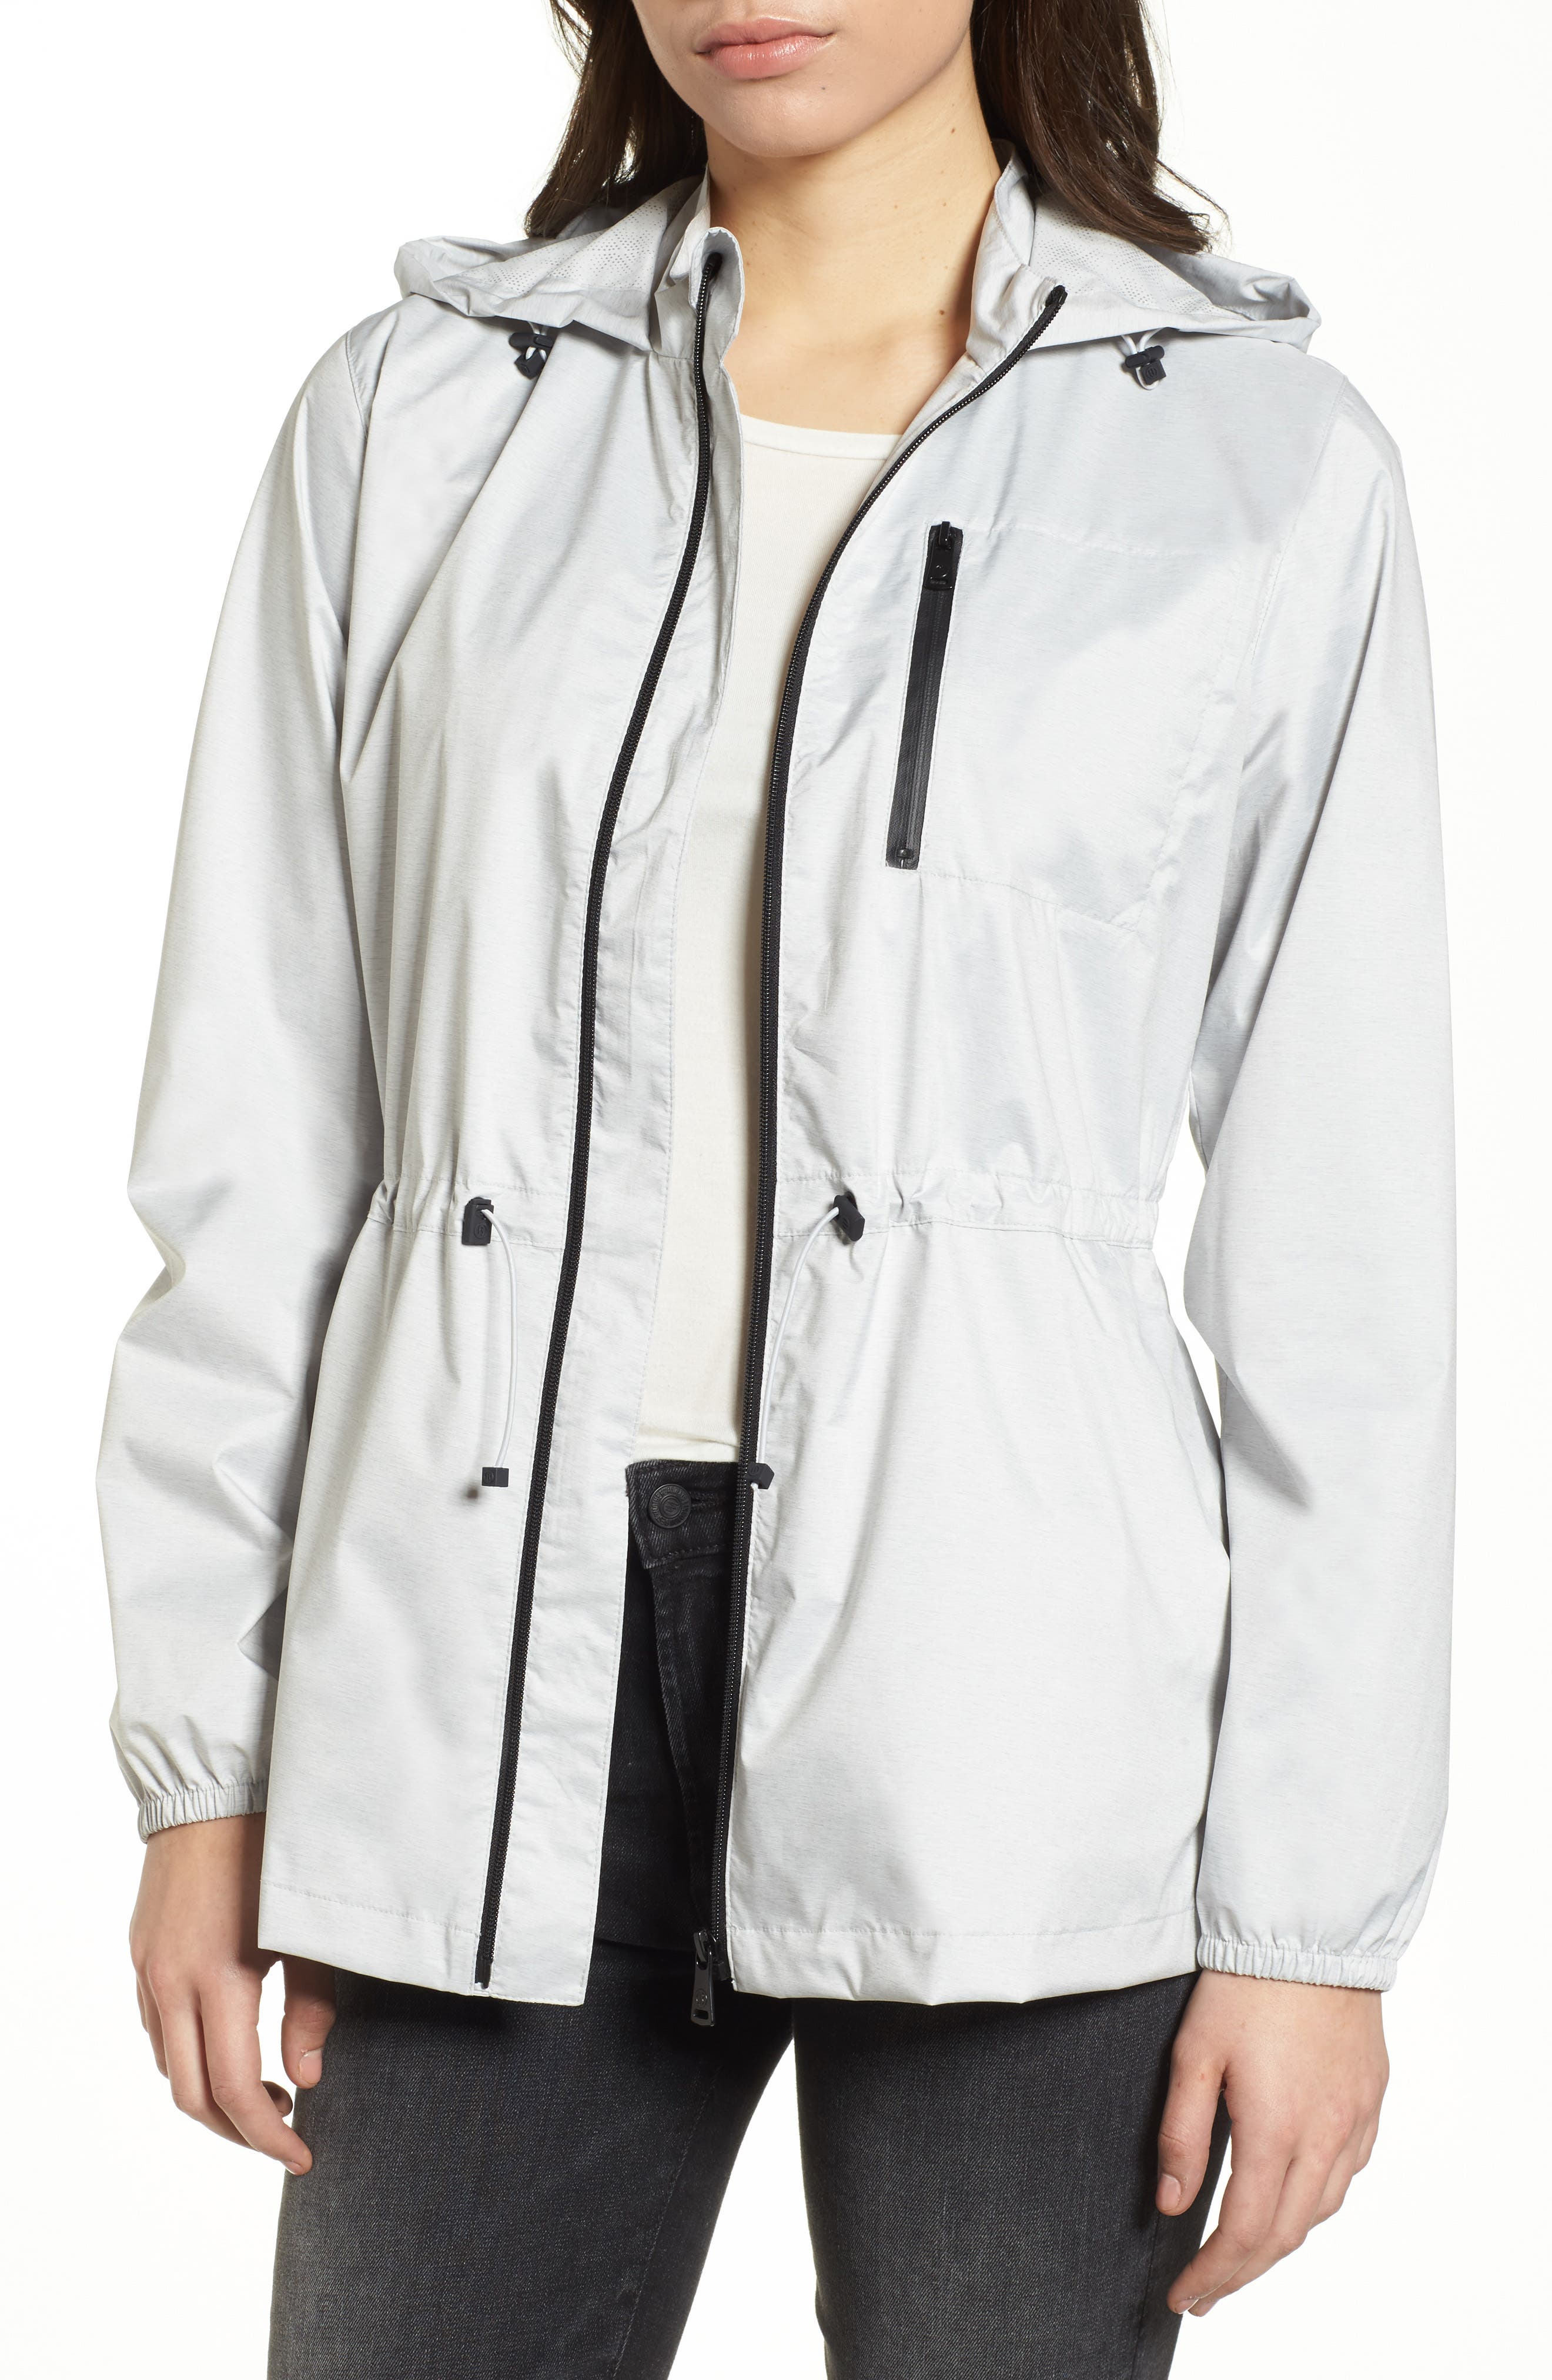 Microbreathable Hooded Water Resistant Jacket,                             Main thumbnail 1, color,                             Light Heather